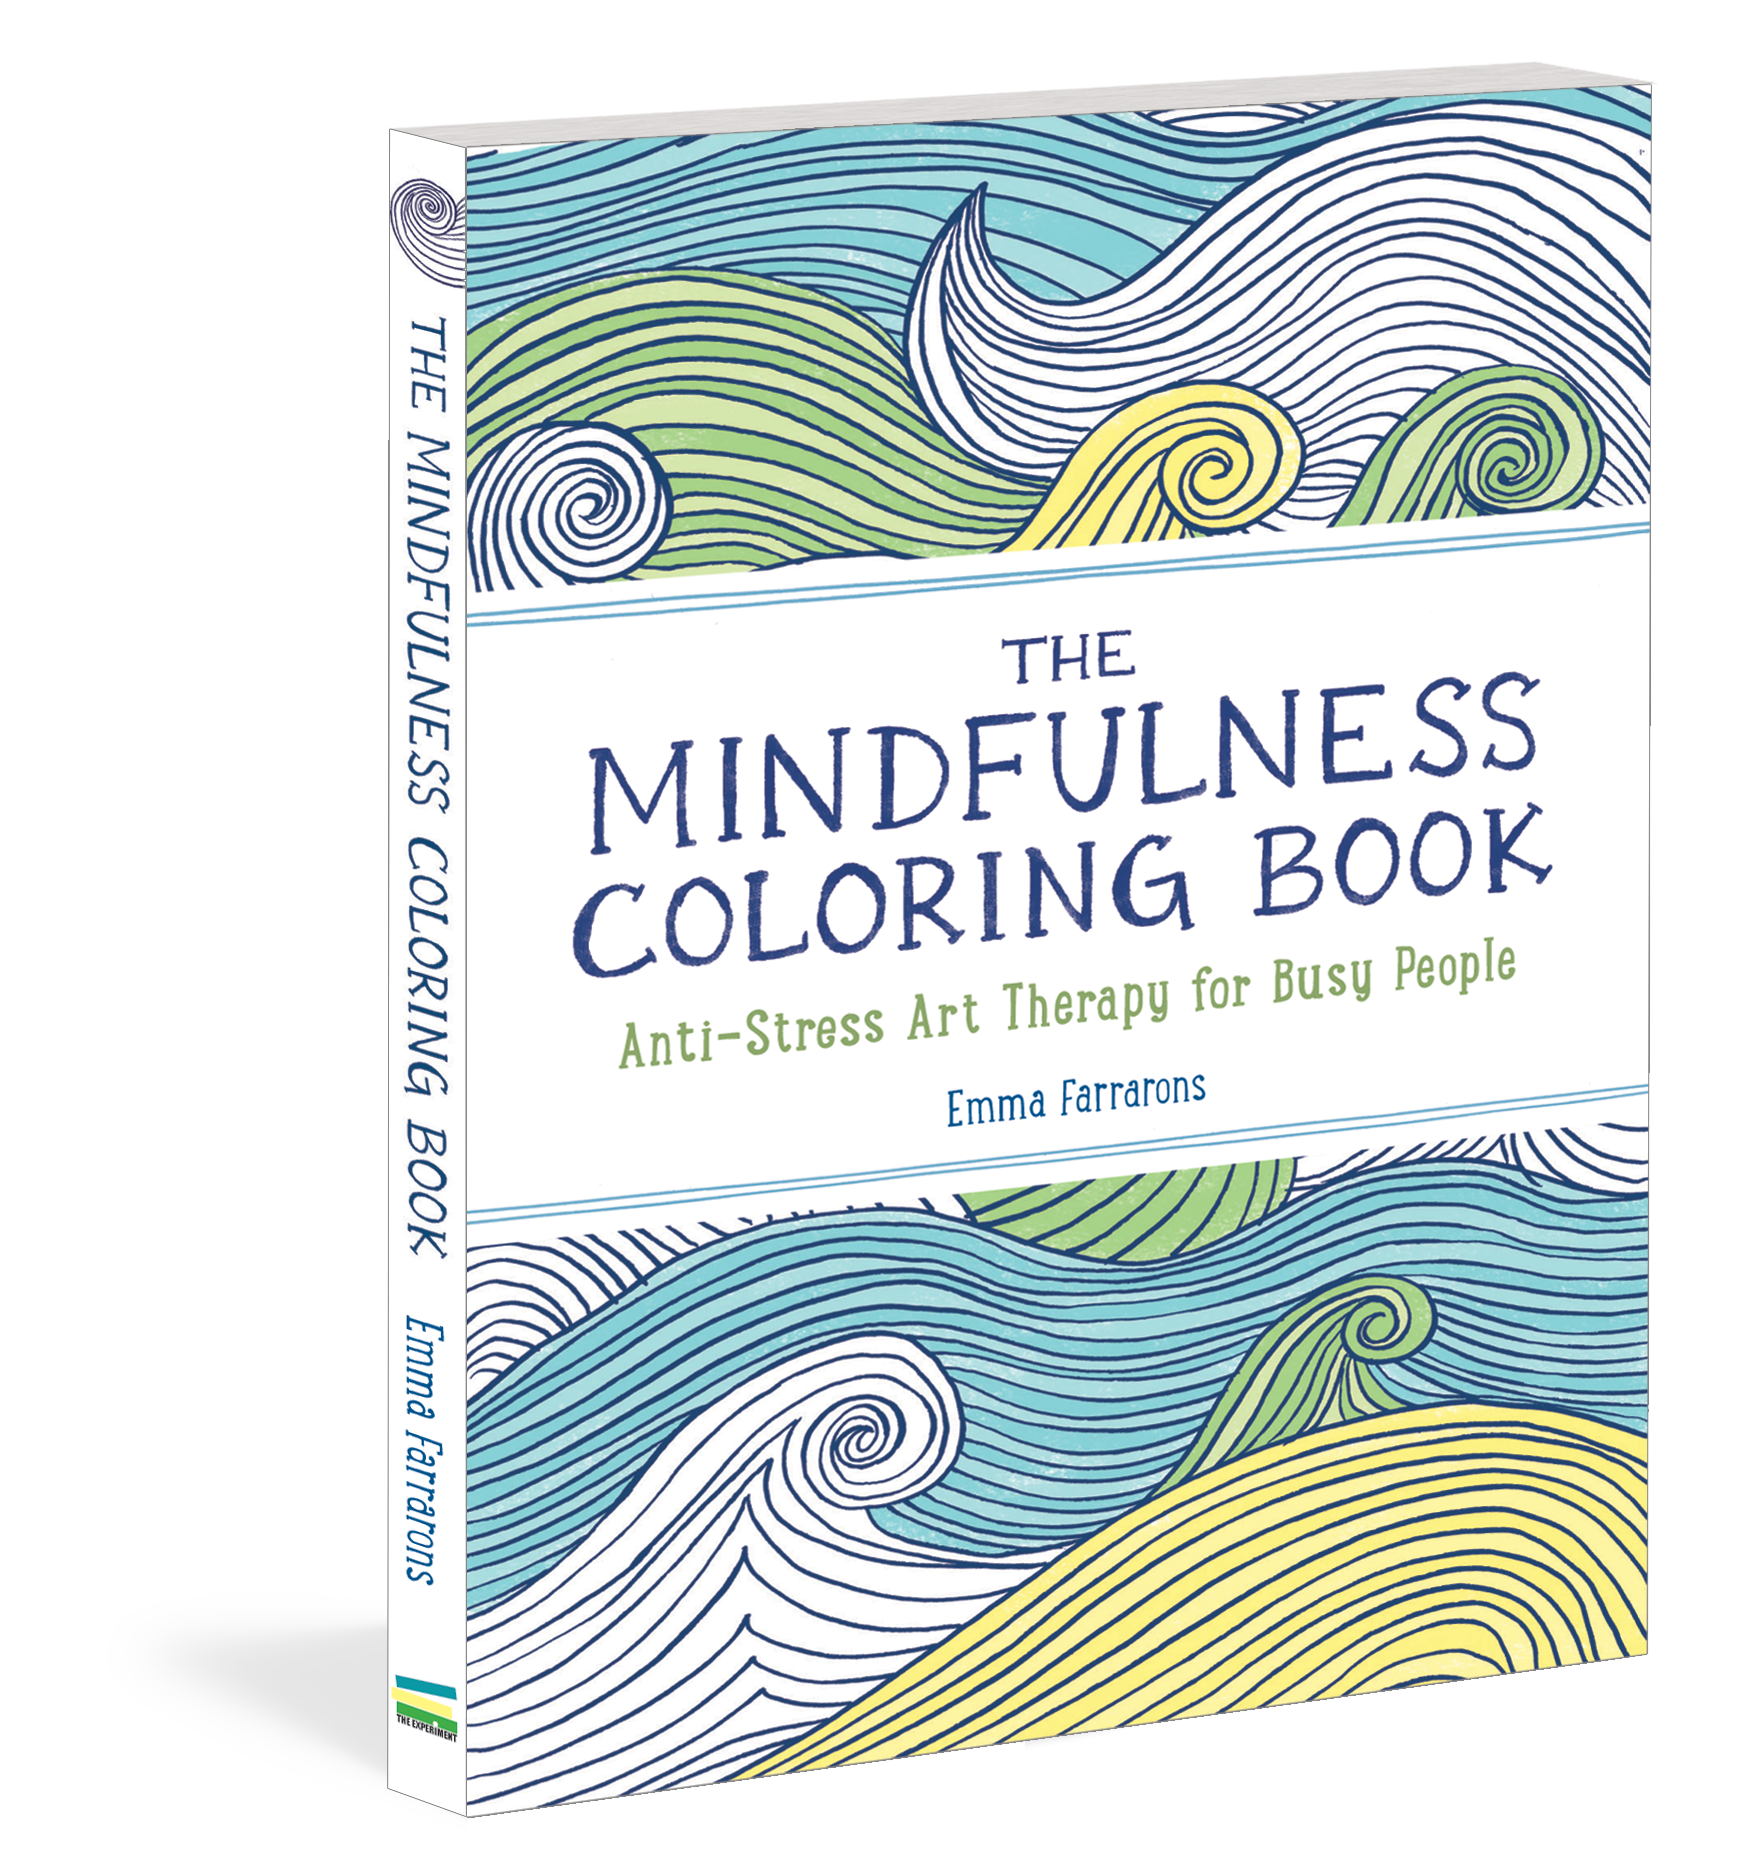 - The Mindfulness Coloring Book - Workman Publishing